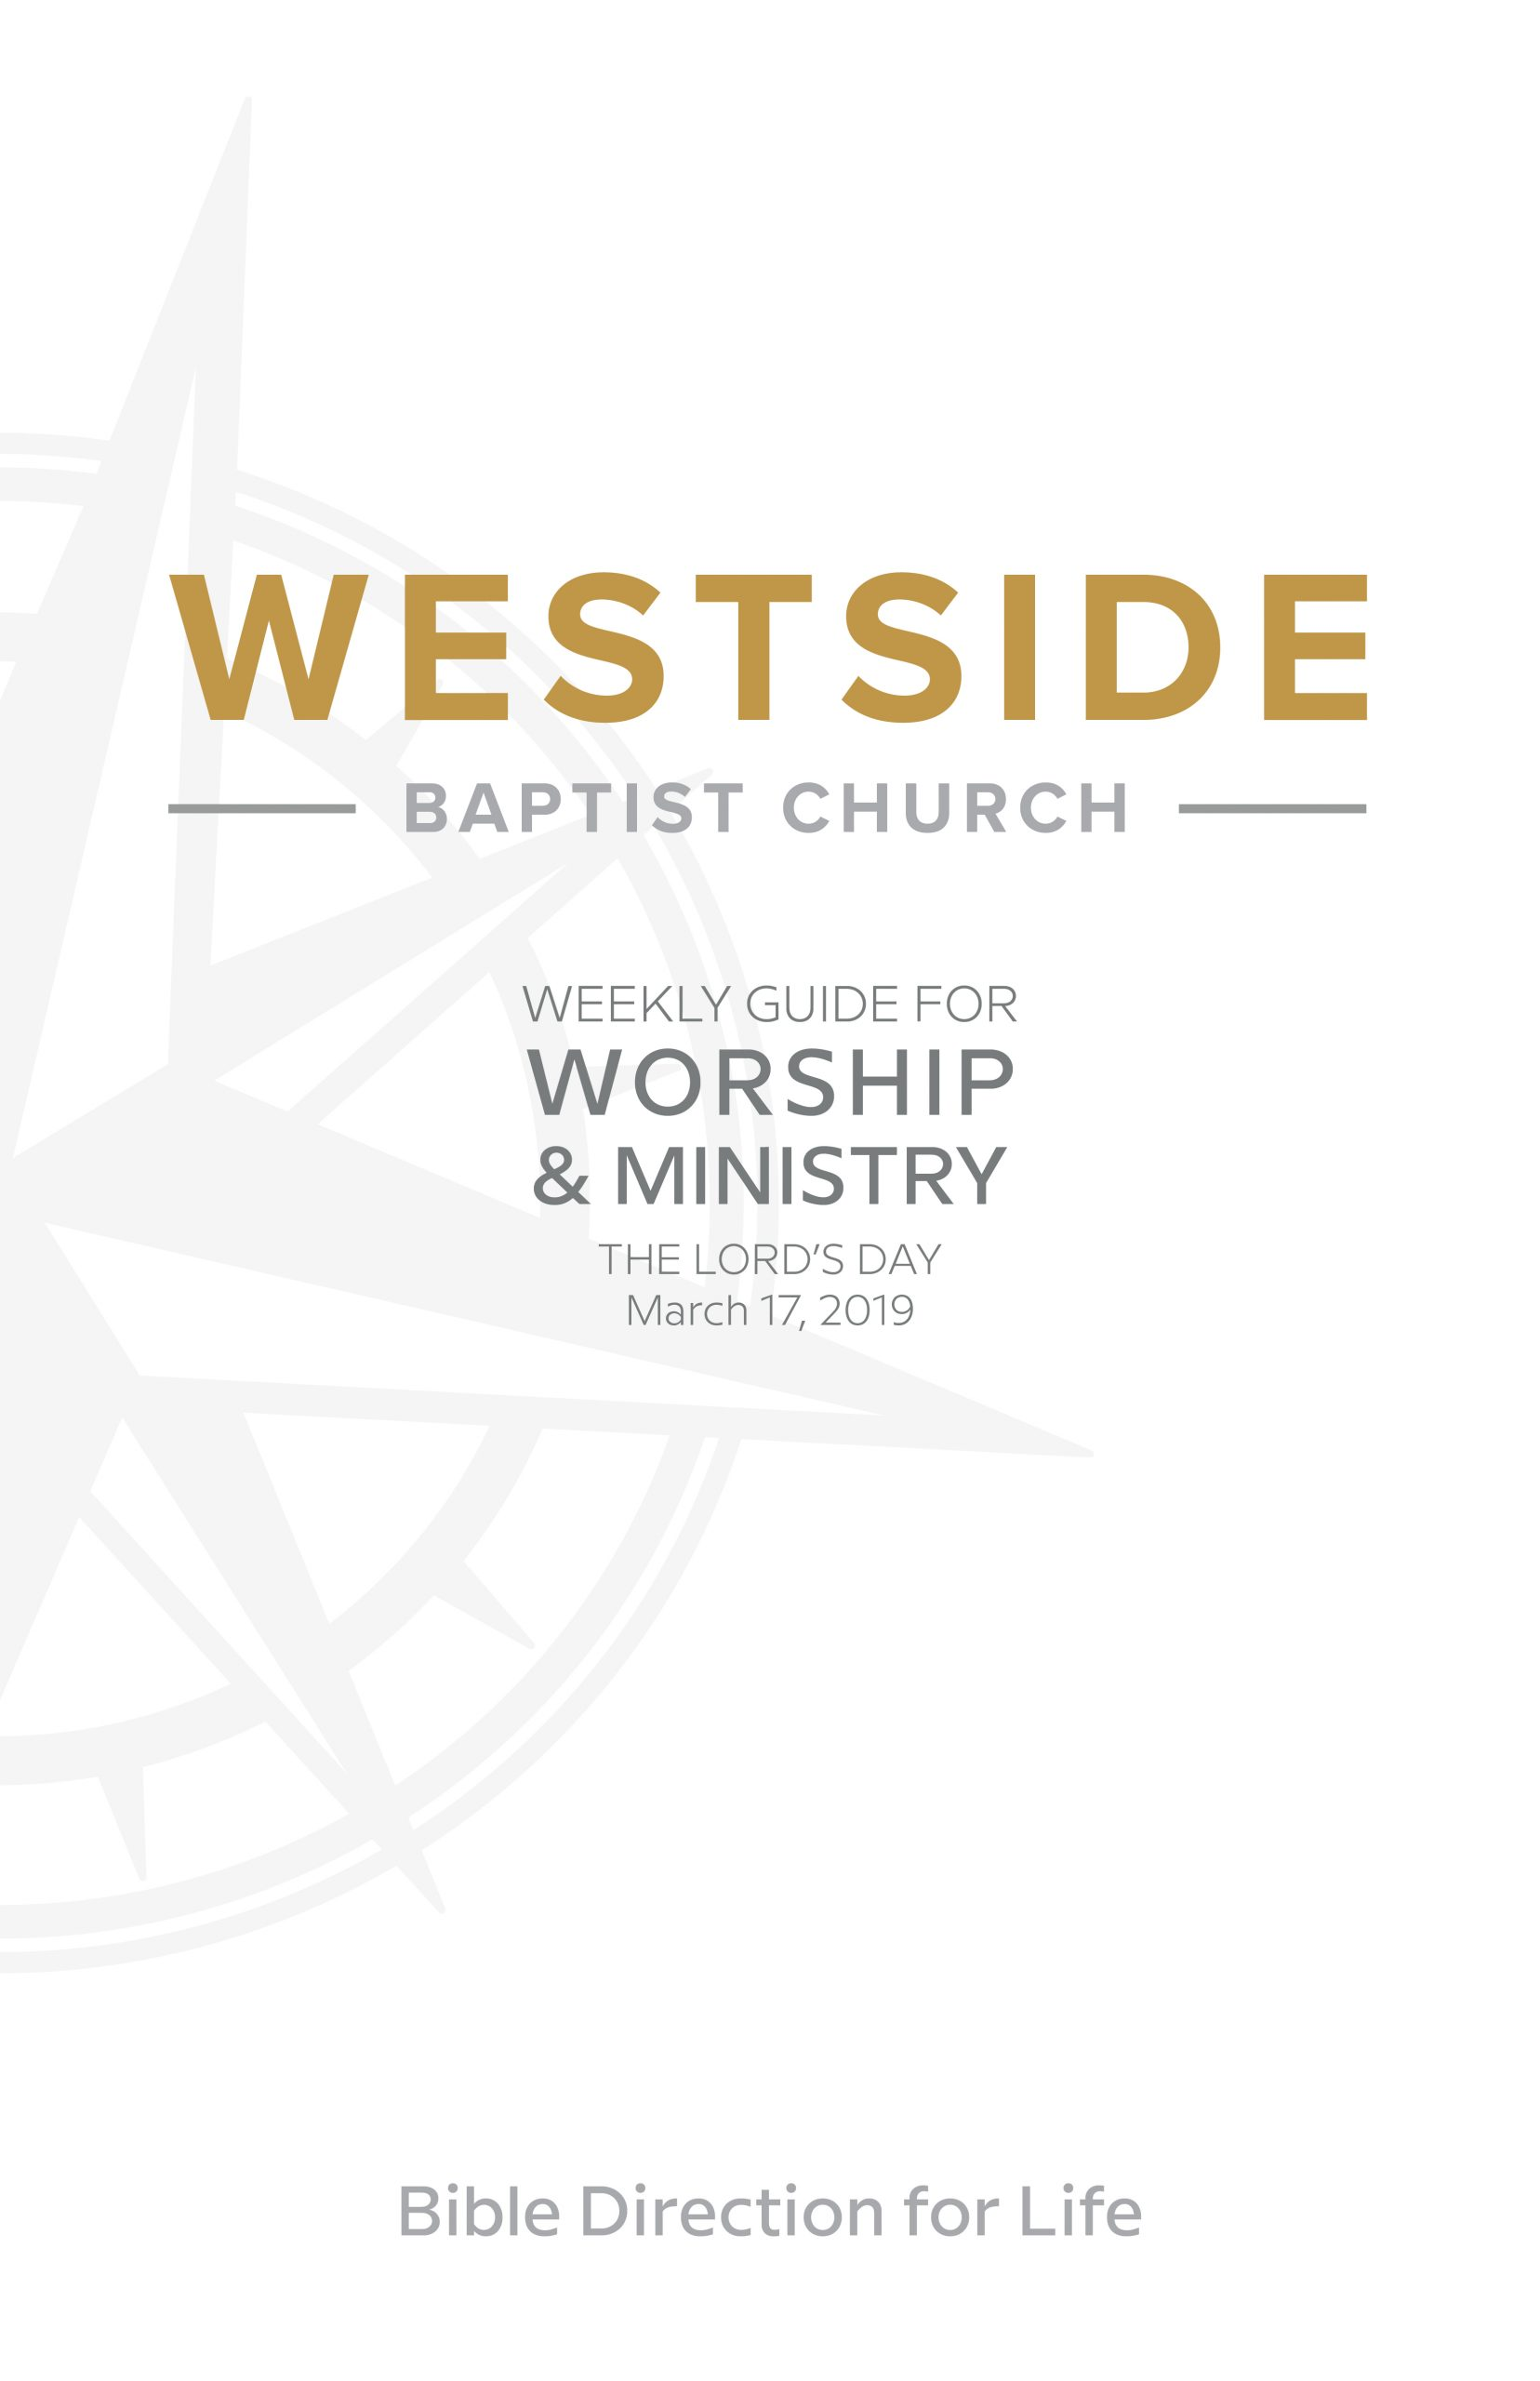 Weekly Guide for Worship and Ministry—March 17